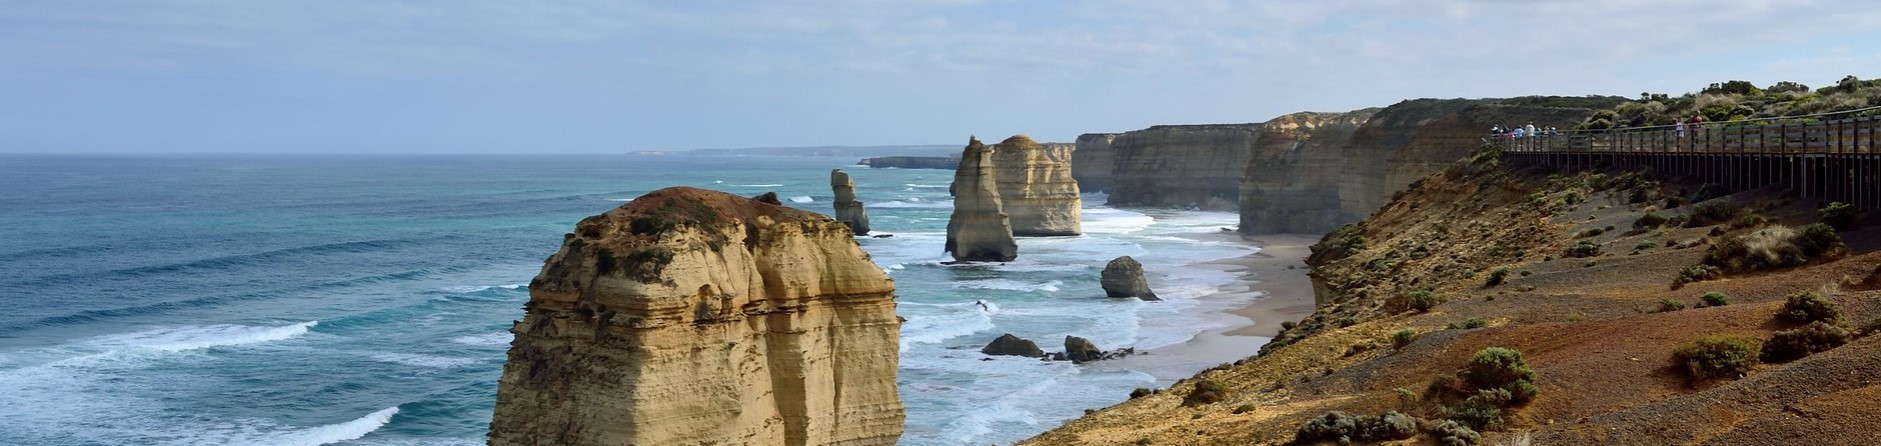 When is the best time to visit the Great Ocean Road?